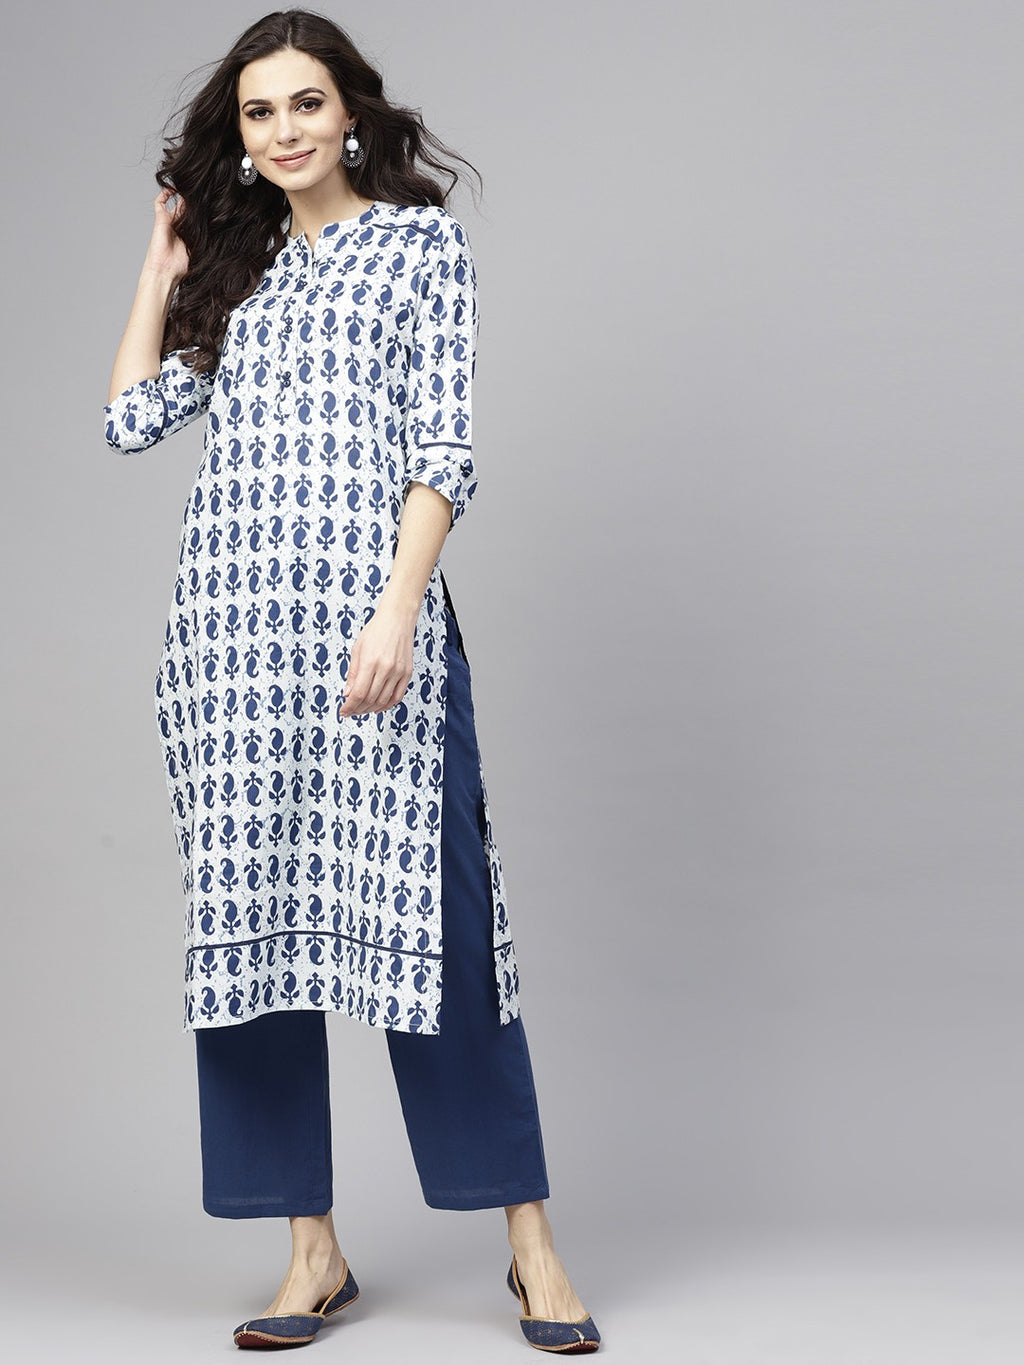 White & Blue Printed Straight Kurta With Pant Set (Fully Stitched) | Znx4ever.com